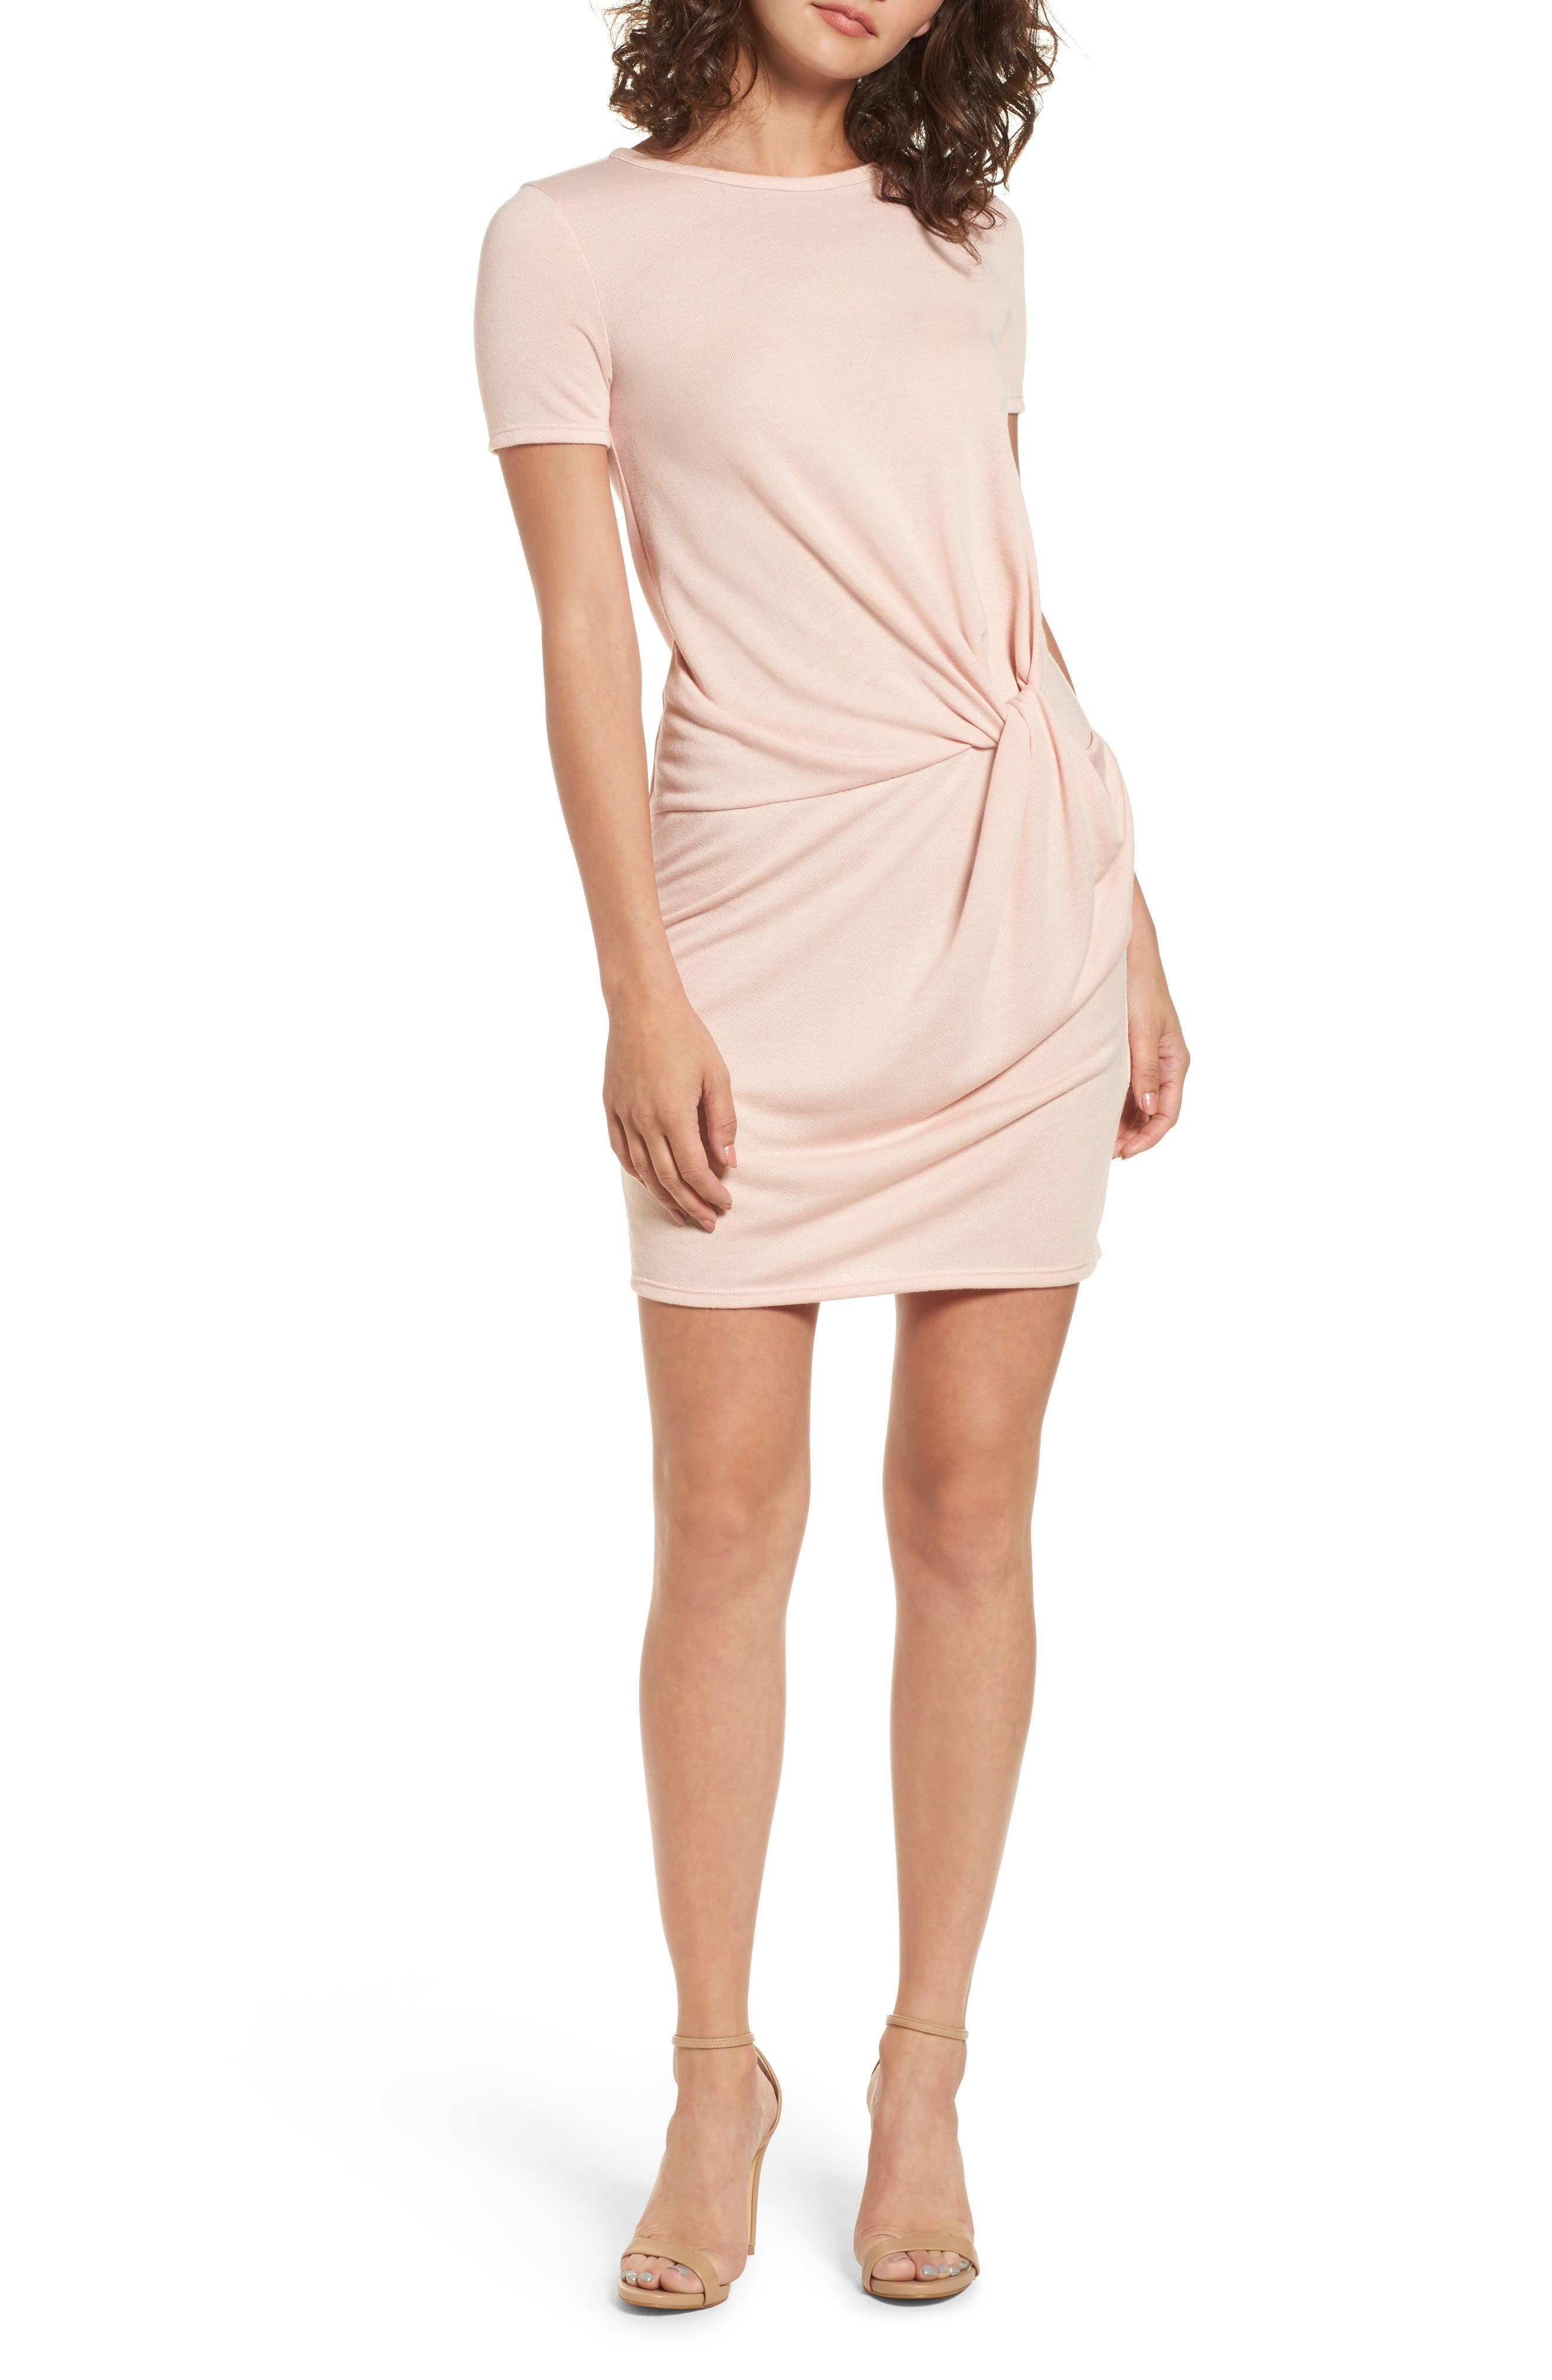 Alternate Image 1 Selected - Dee Elly Knot Front Sheath Dress